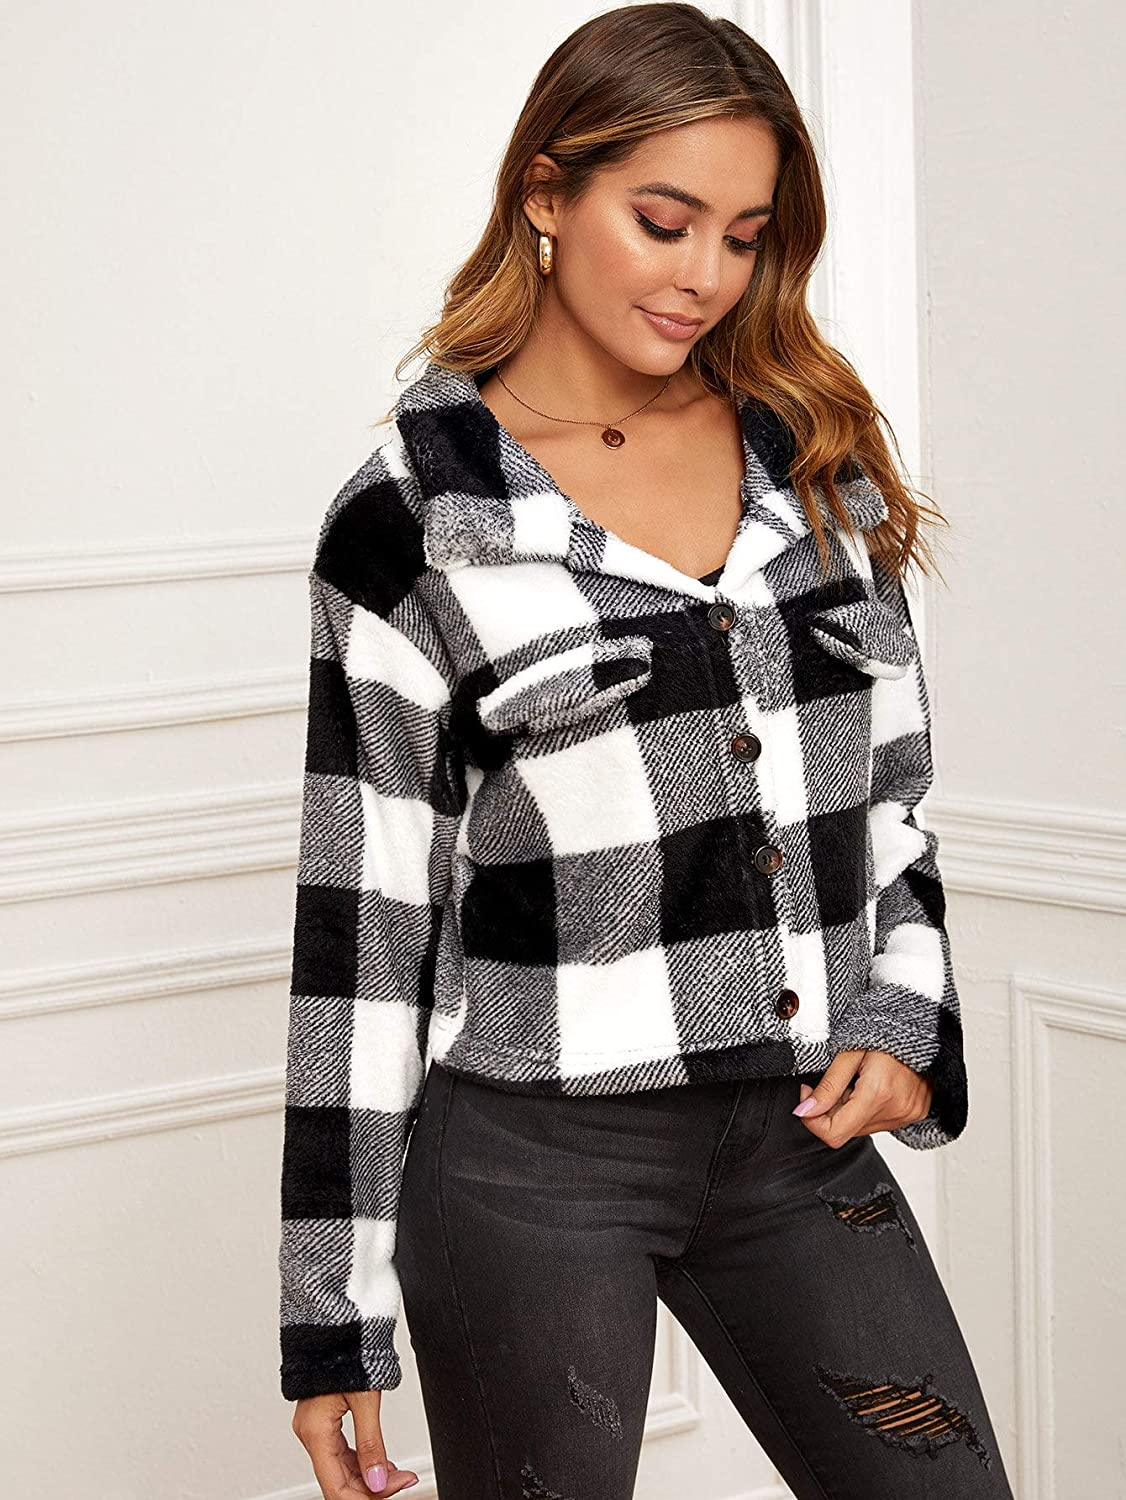 SOLY HUX Women's Casual Plaid Collar Long Sleeve Button Down Jacket